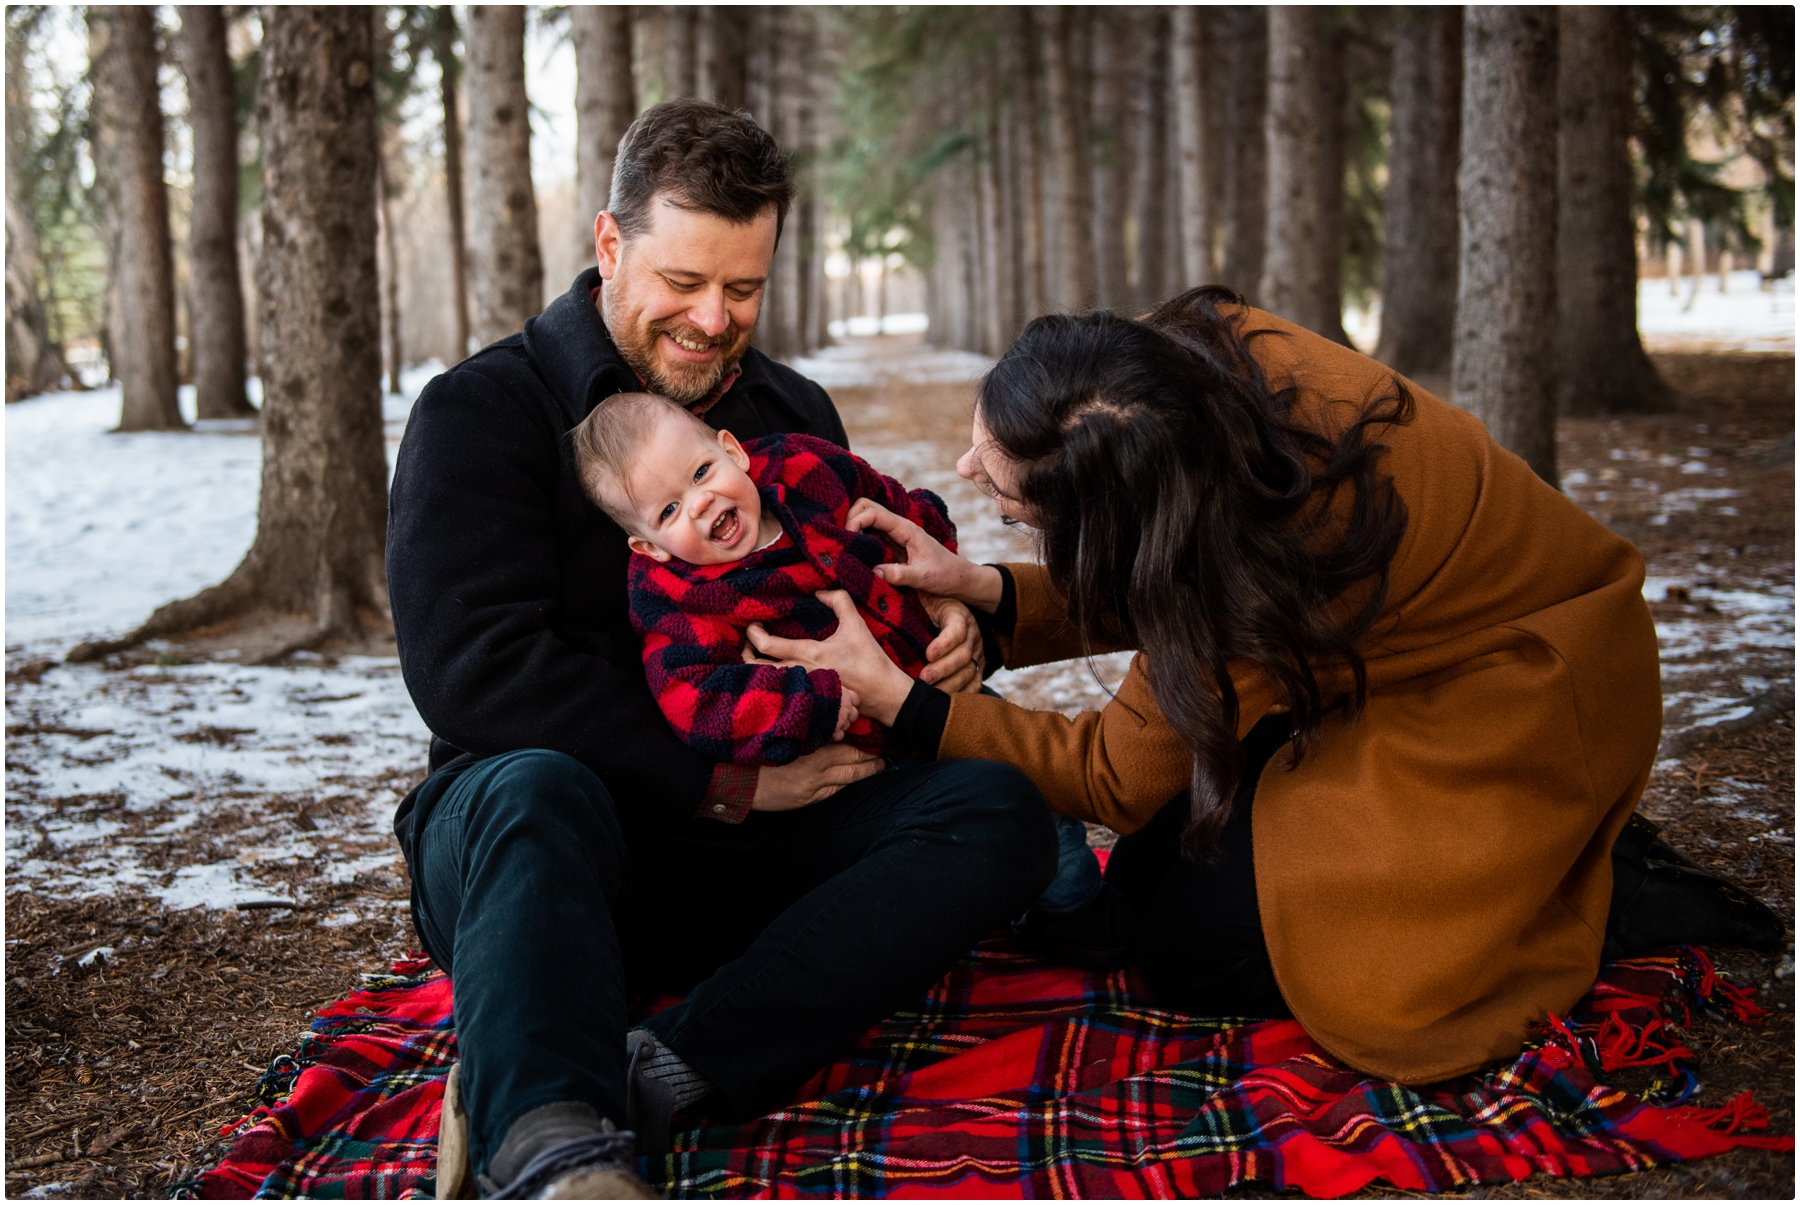 Edworthy Park Family Photographer Calgary